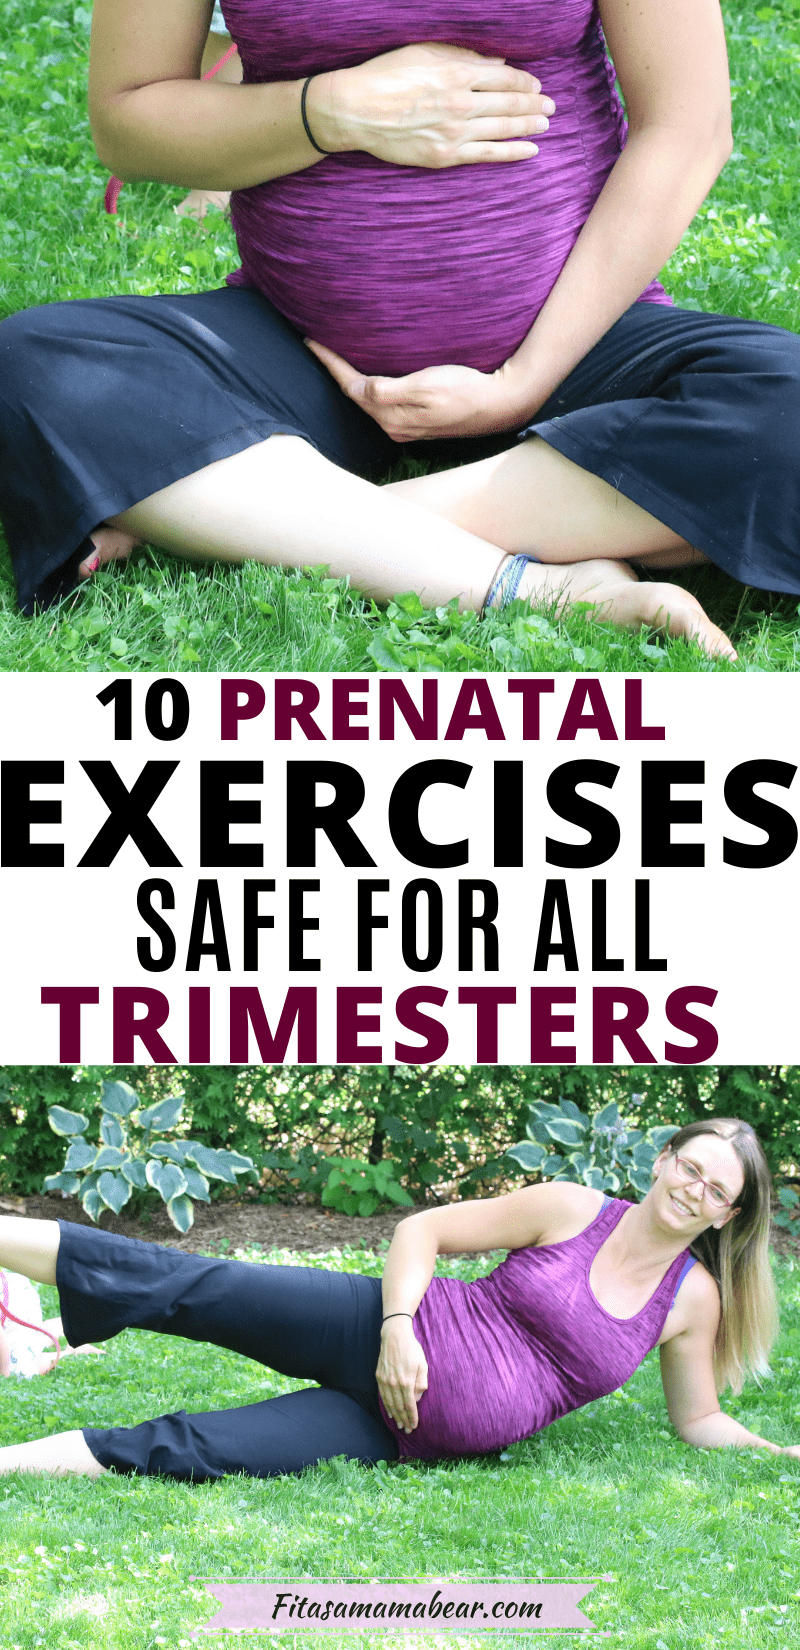 Pinerest image with text: two images of a pregnant lady in a pink shirt and black pants both holing her belly and working out outside